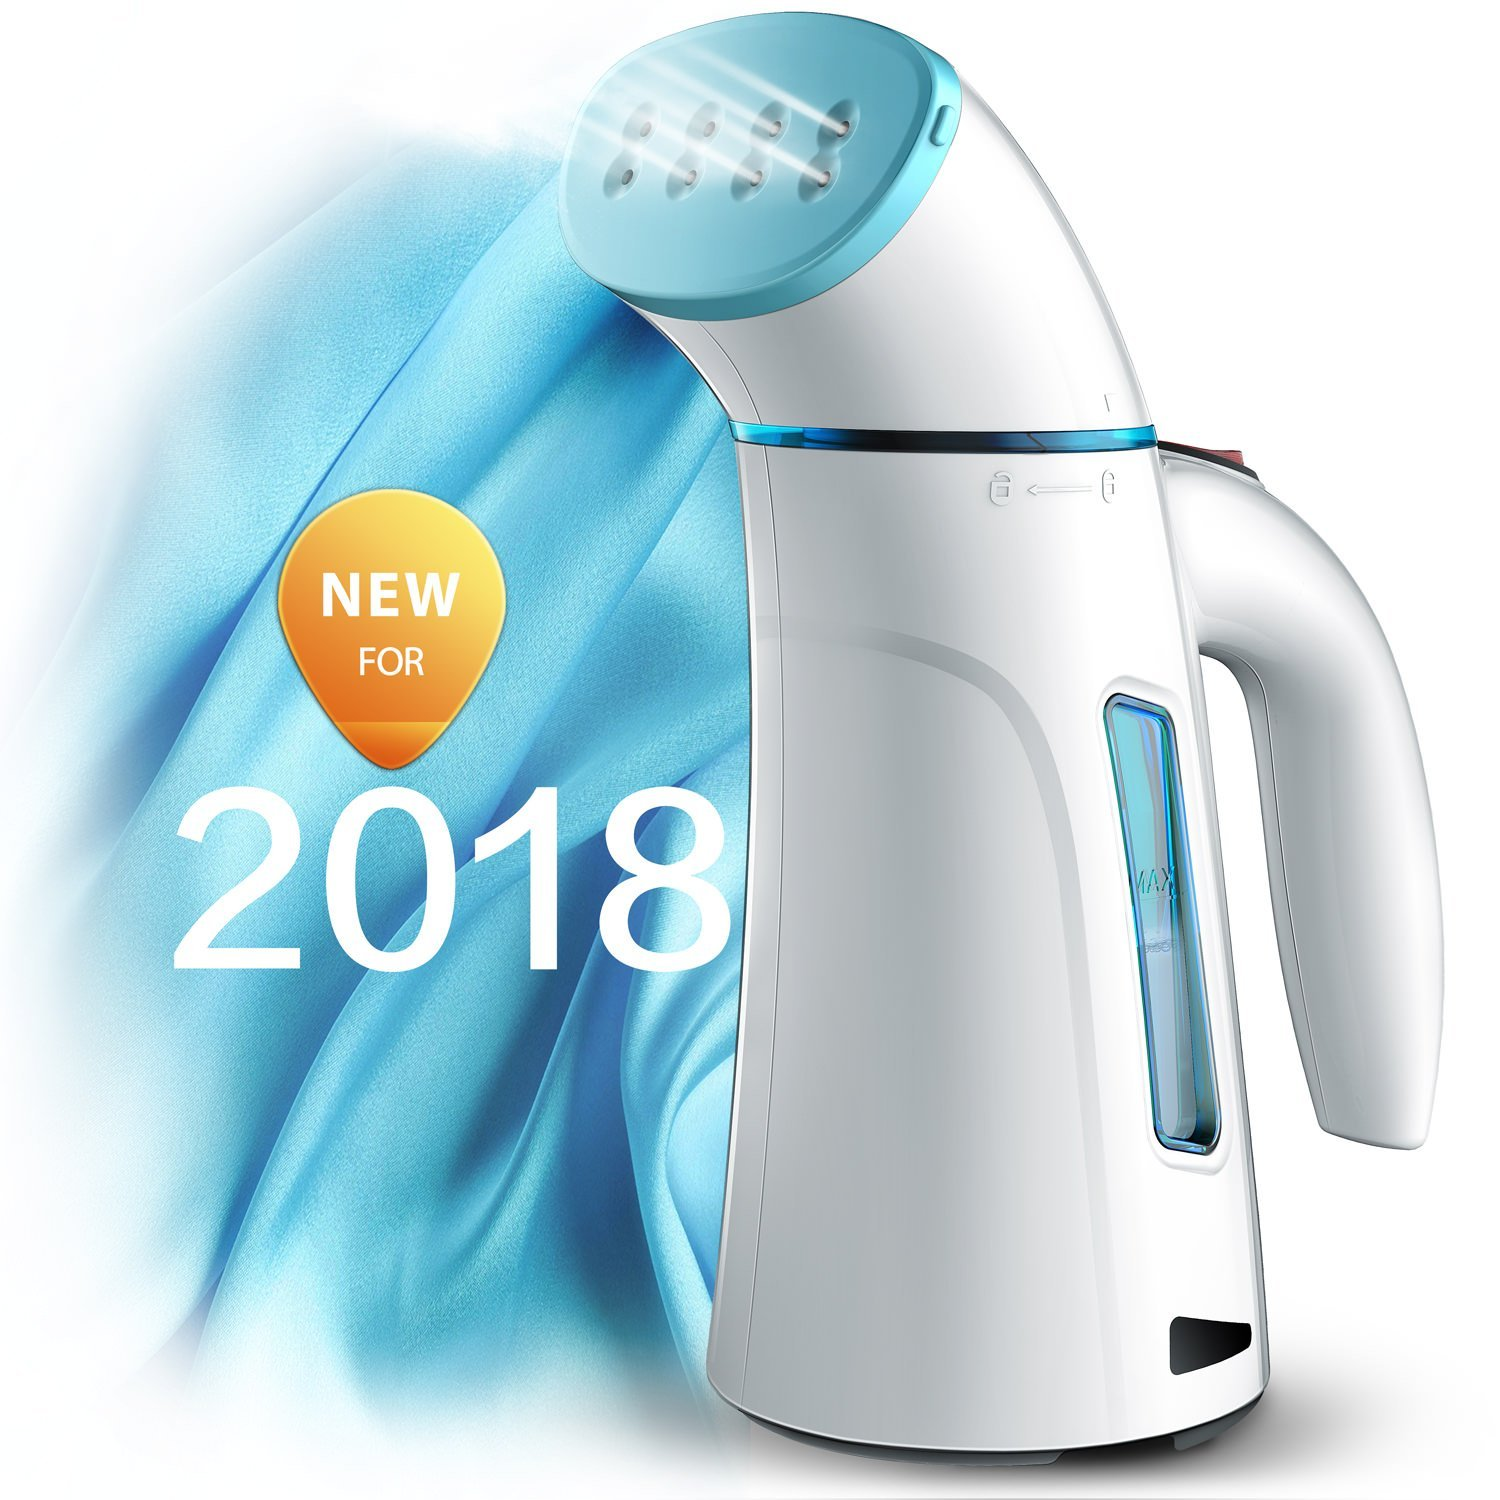 Steamer for Clothes Steamer, Handheld Garment Steamer for Clothing Steamer. Mini Travel Steamer for Portable Steam Iron Hand Held … (Blue) by Hilife